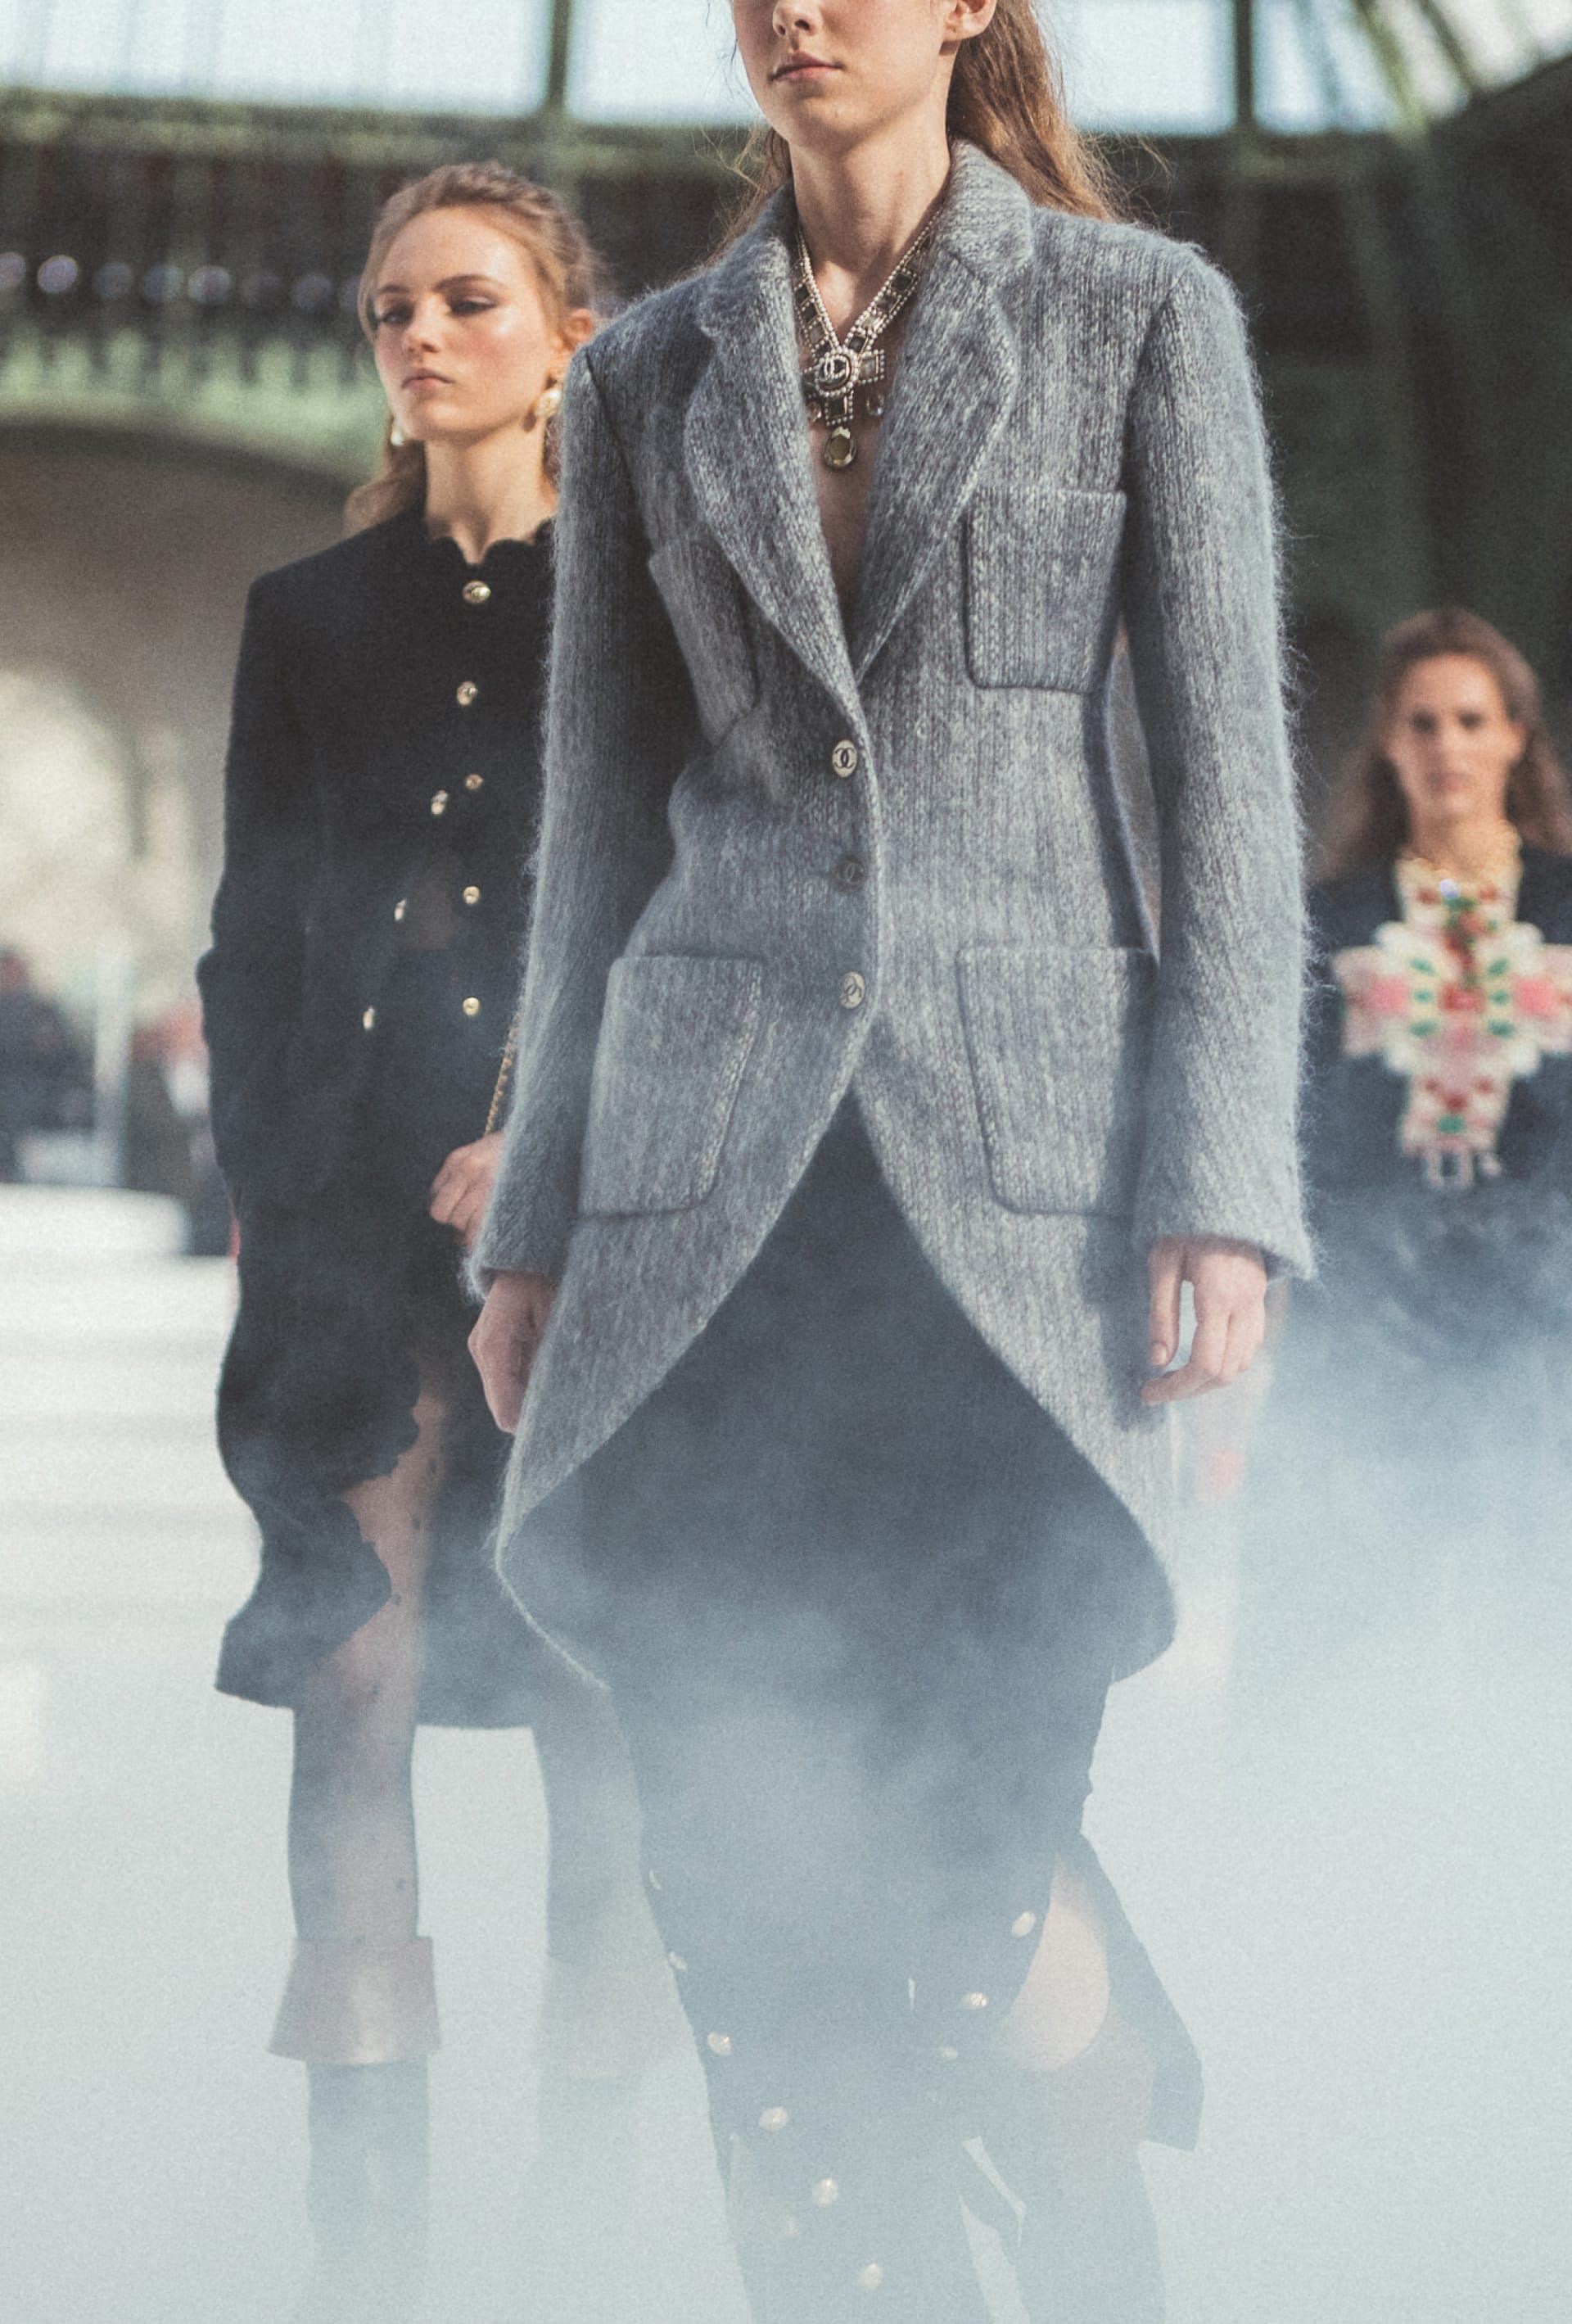 Additional image 1 - Look  14 -  - Fall-Winter 2020/21